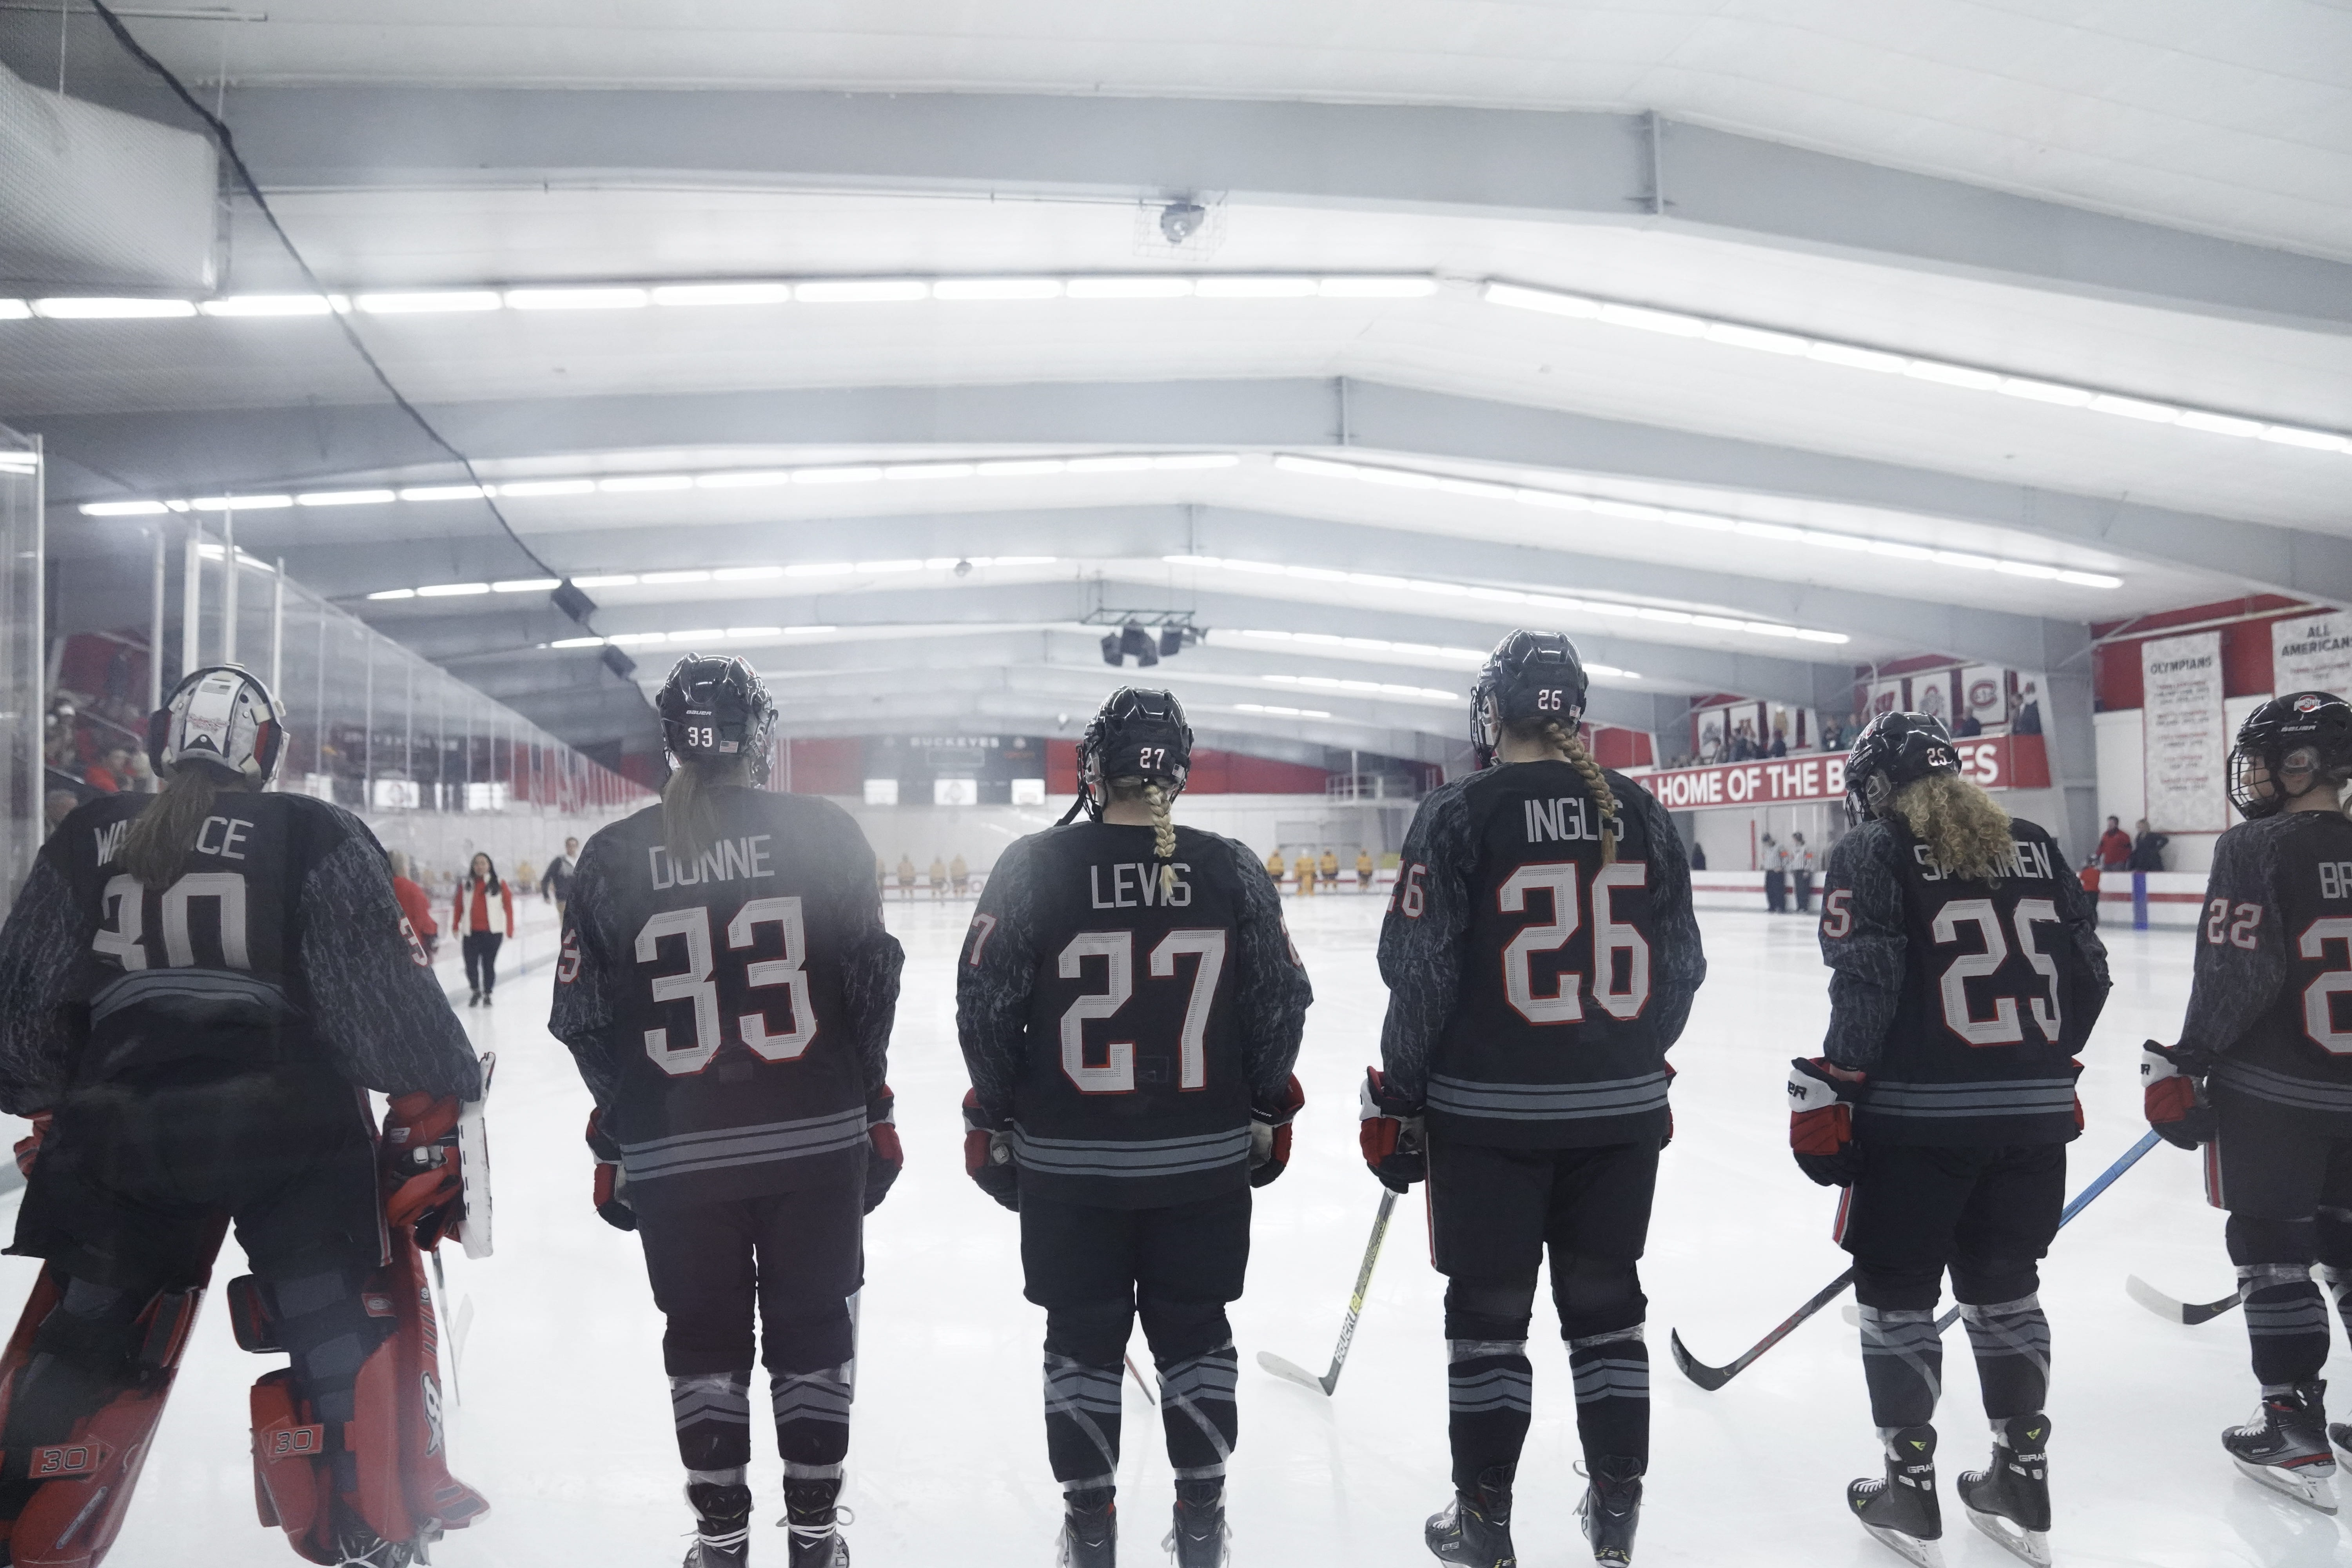 Women's Hockey: No. 7 Ohio State and No. 9 Minnesota Duluth clash after bye week